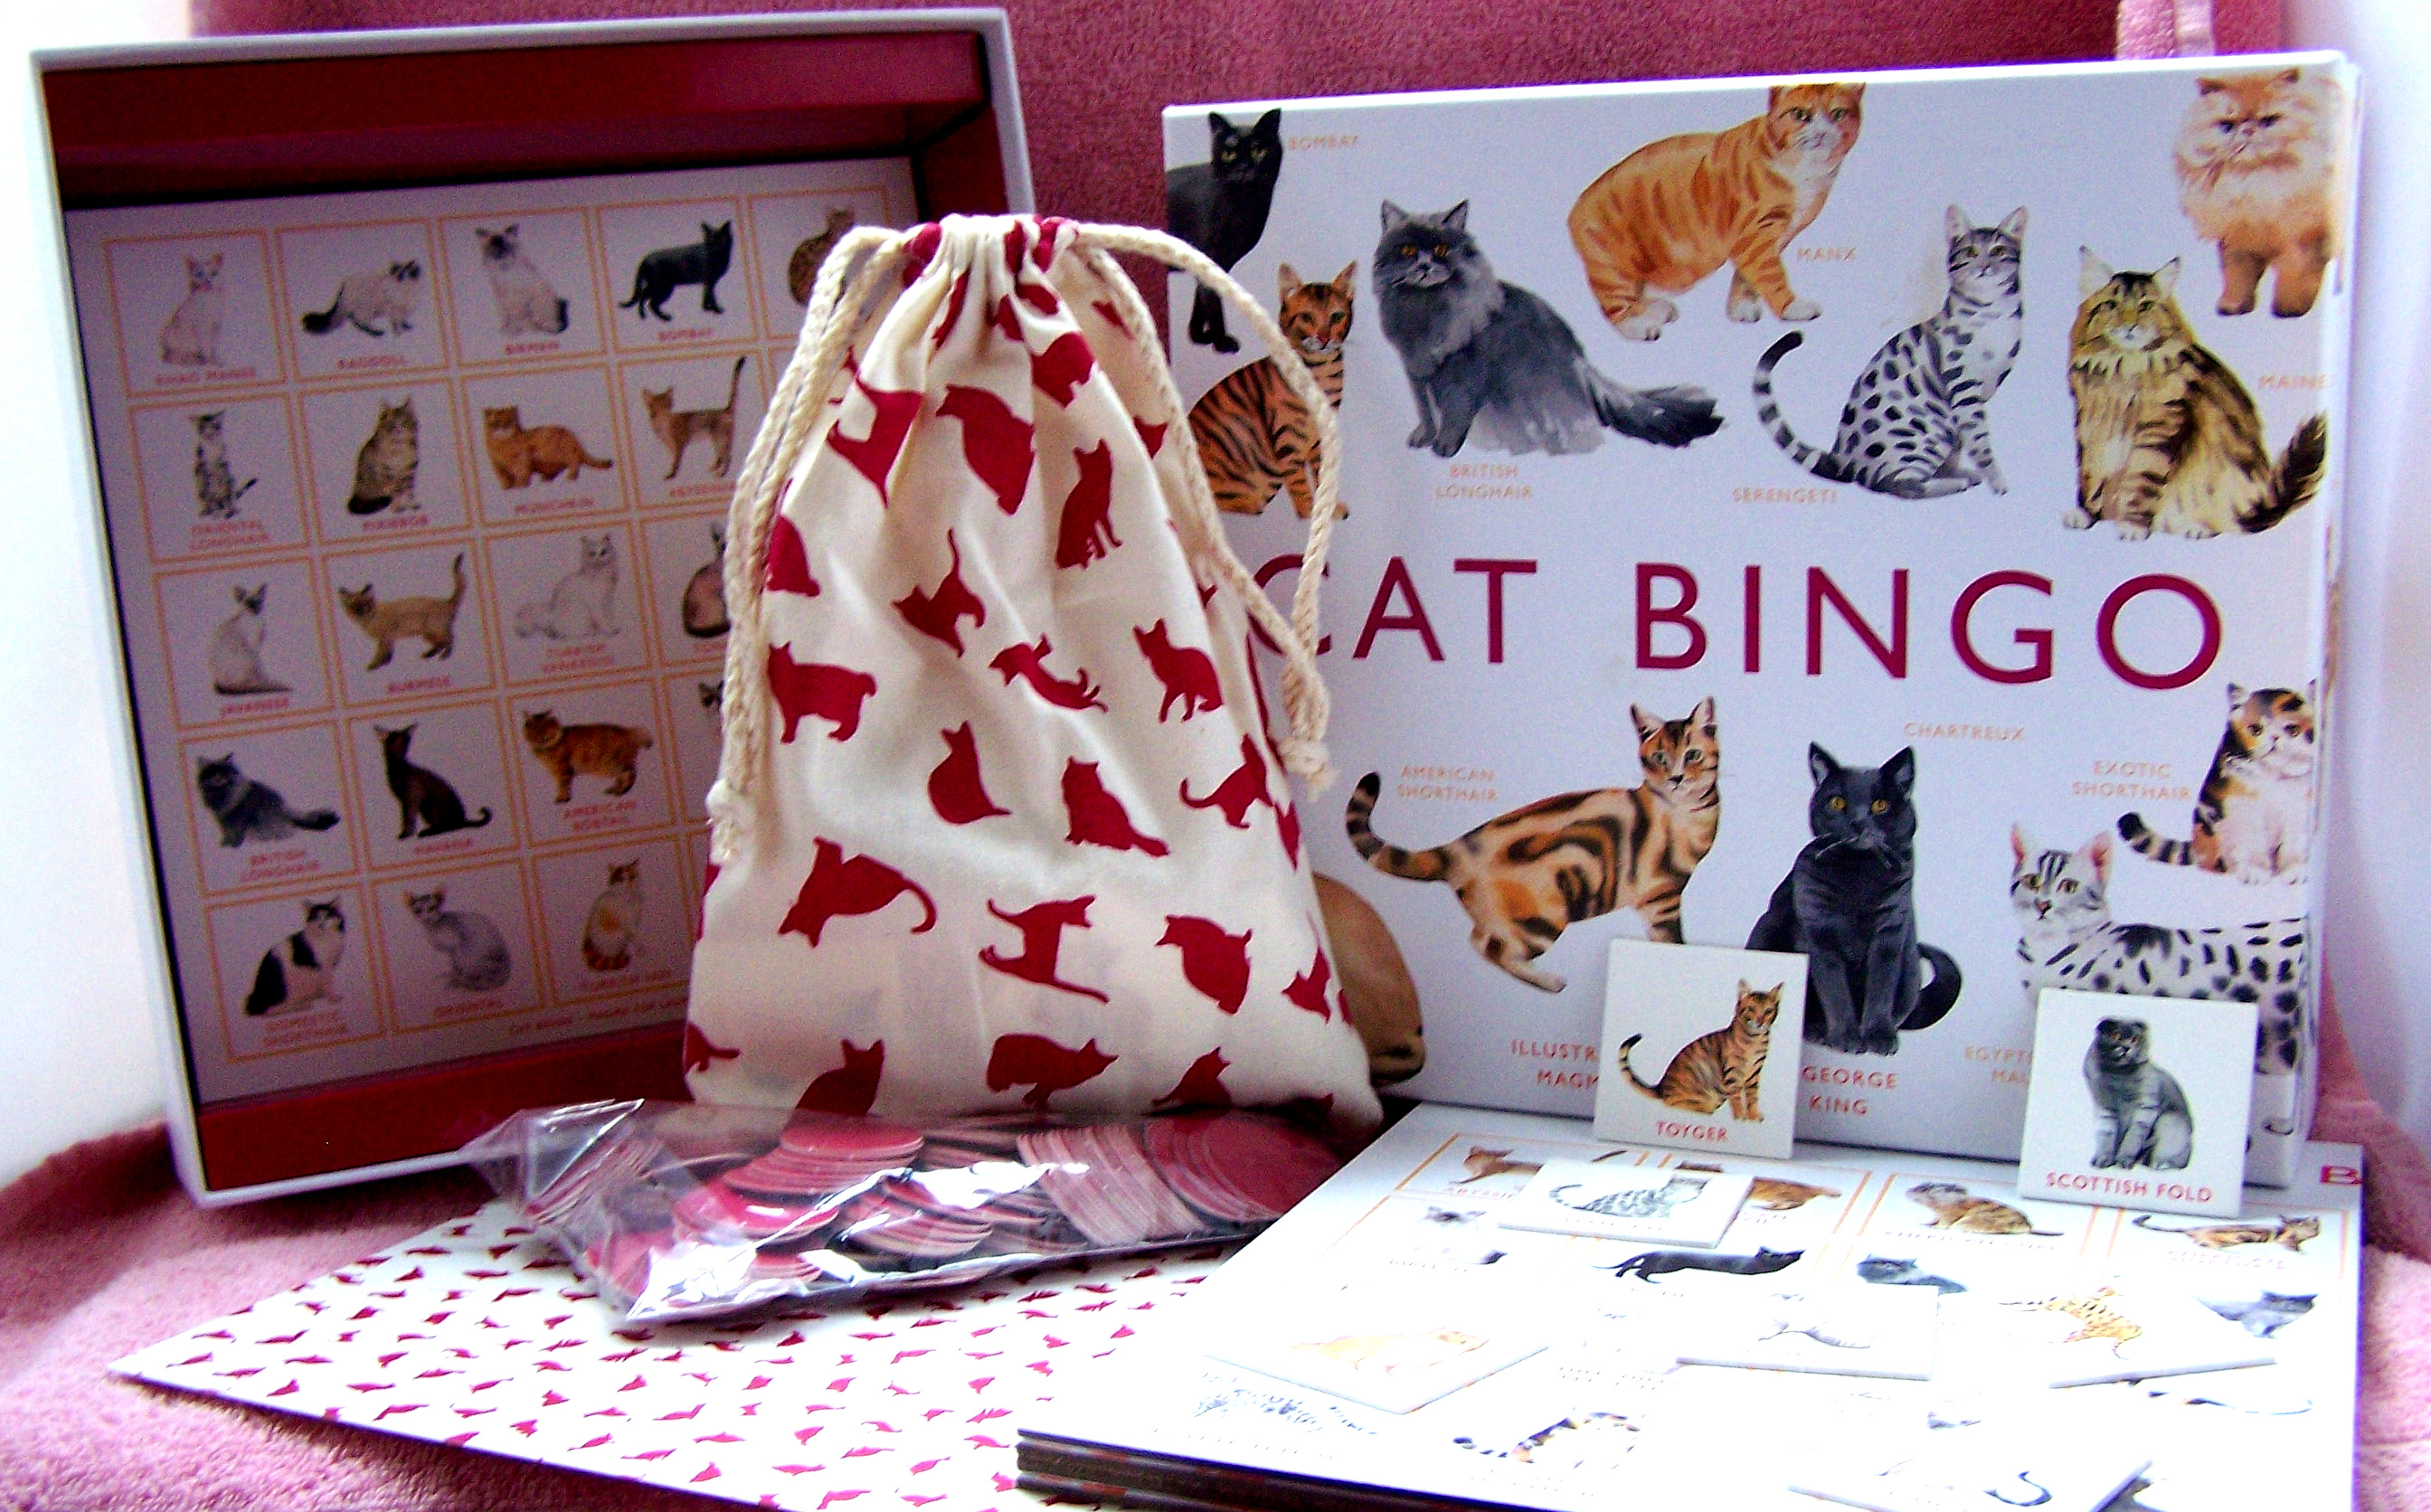 Cat Bingo: Holiday Gift Guide Giveaway! Ends 12/21